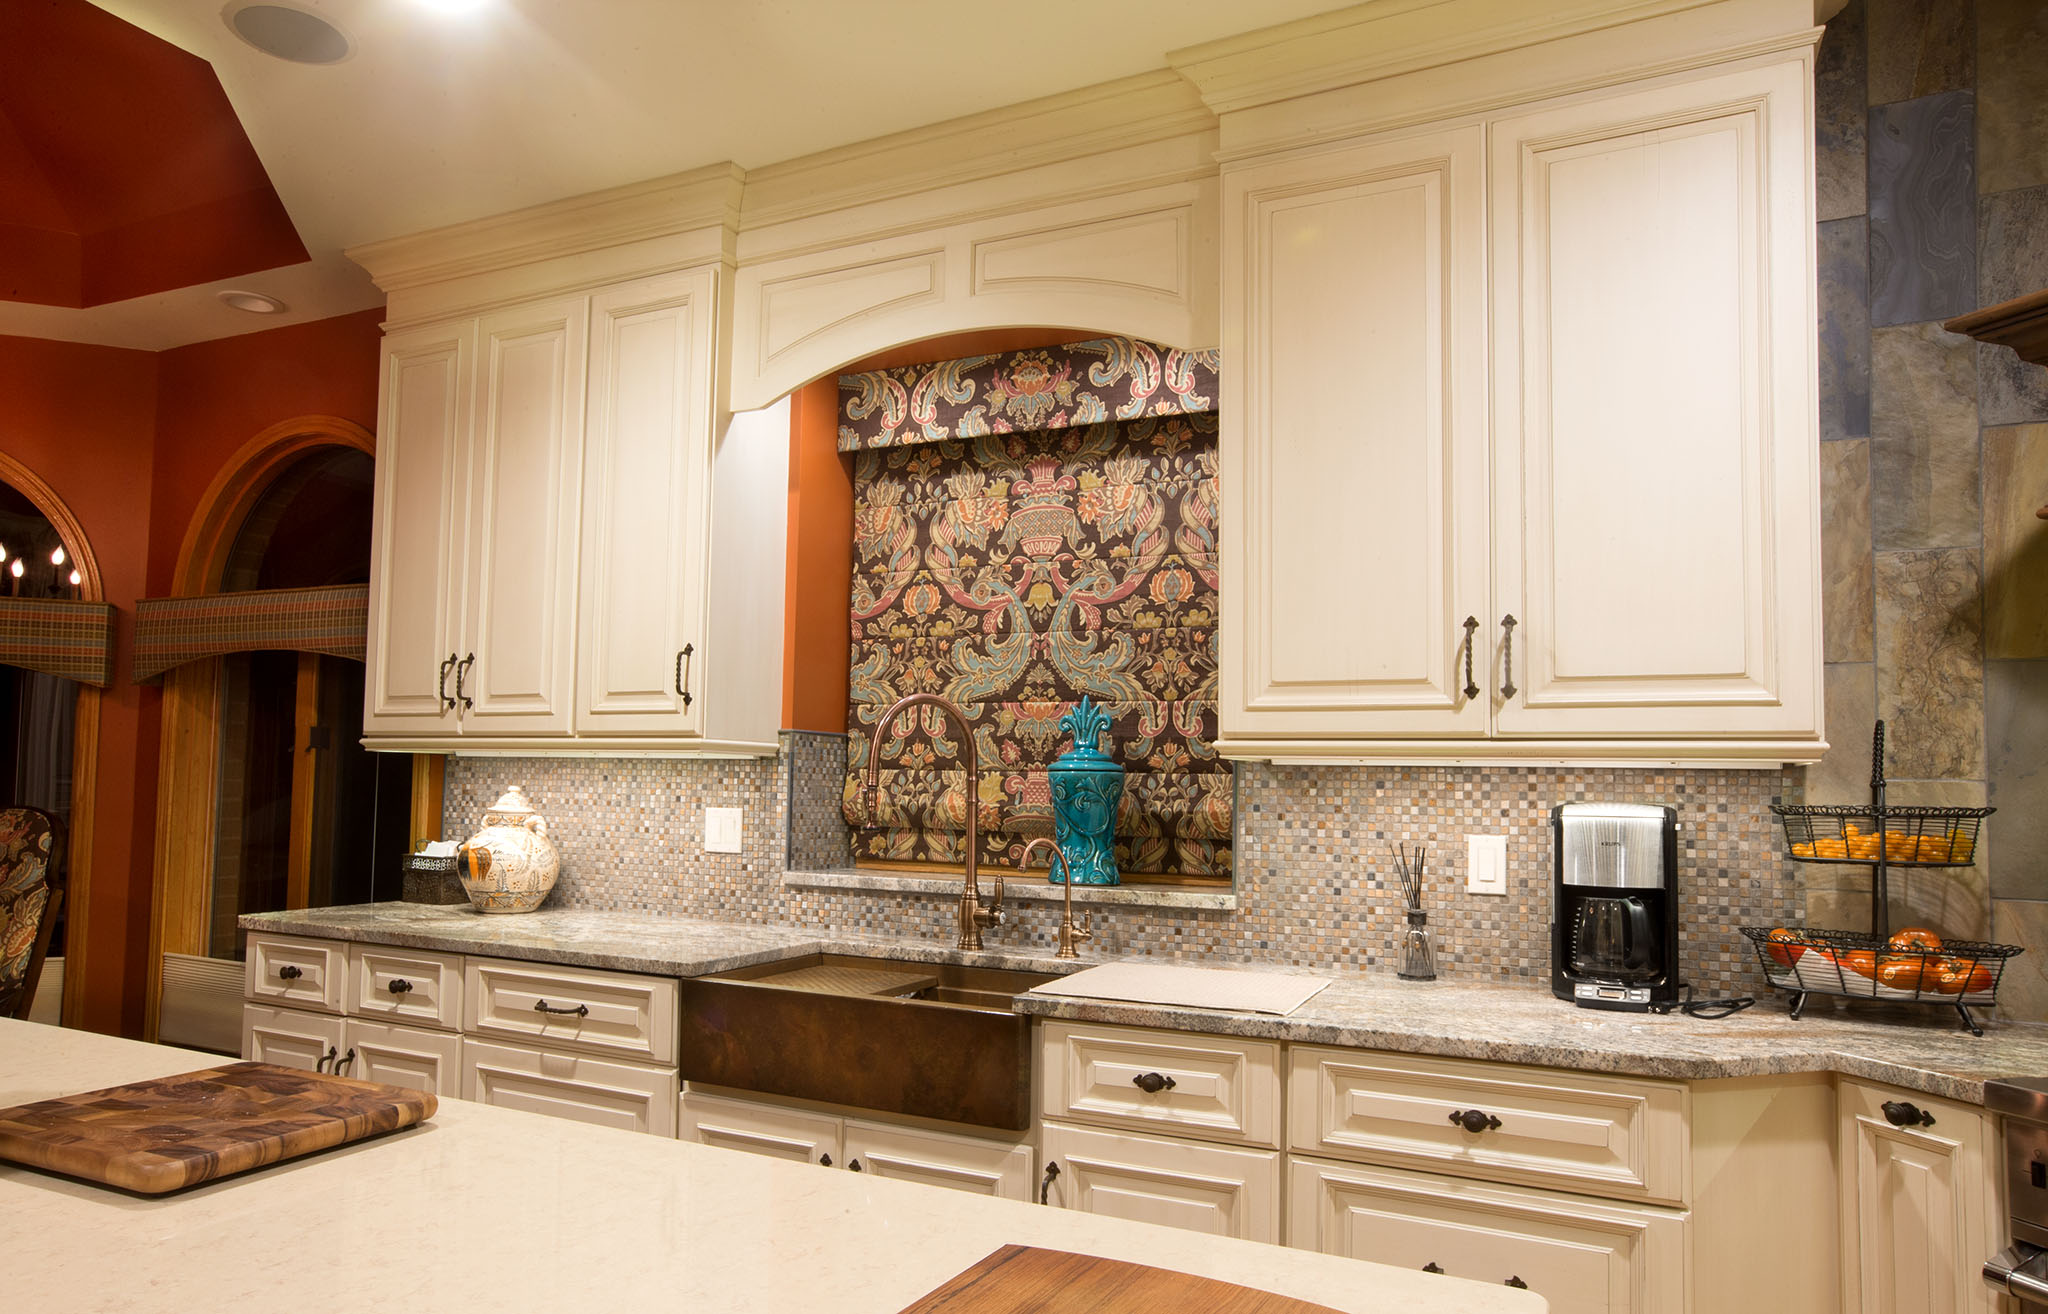 White kitchen cabinets with natural stone back splash